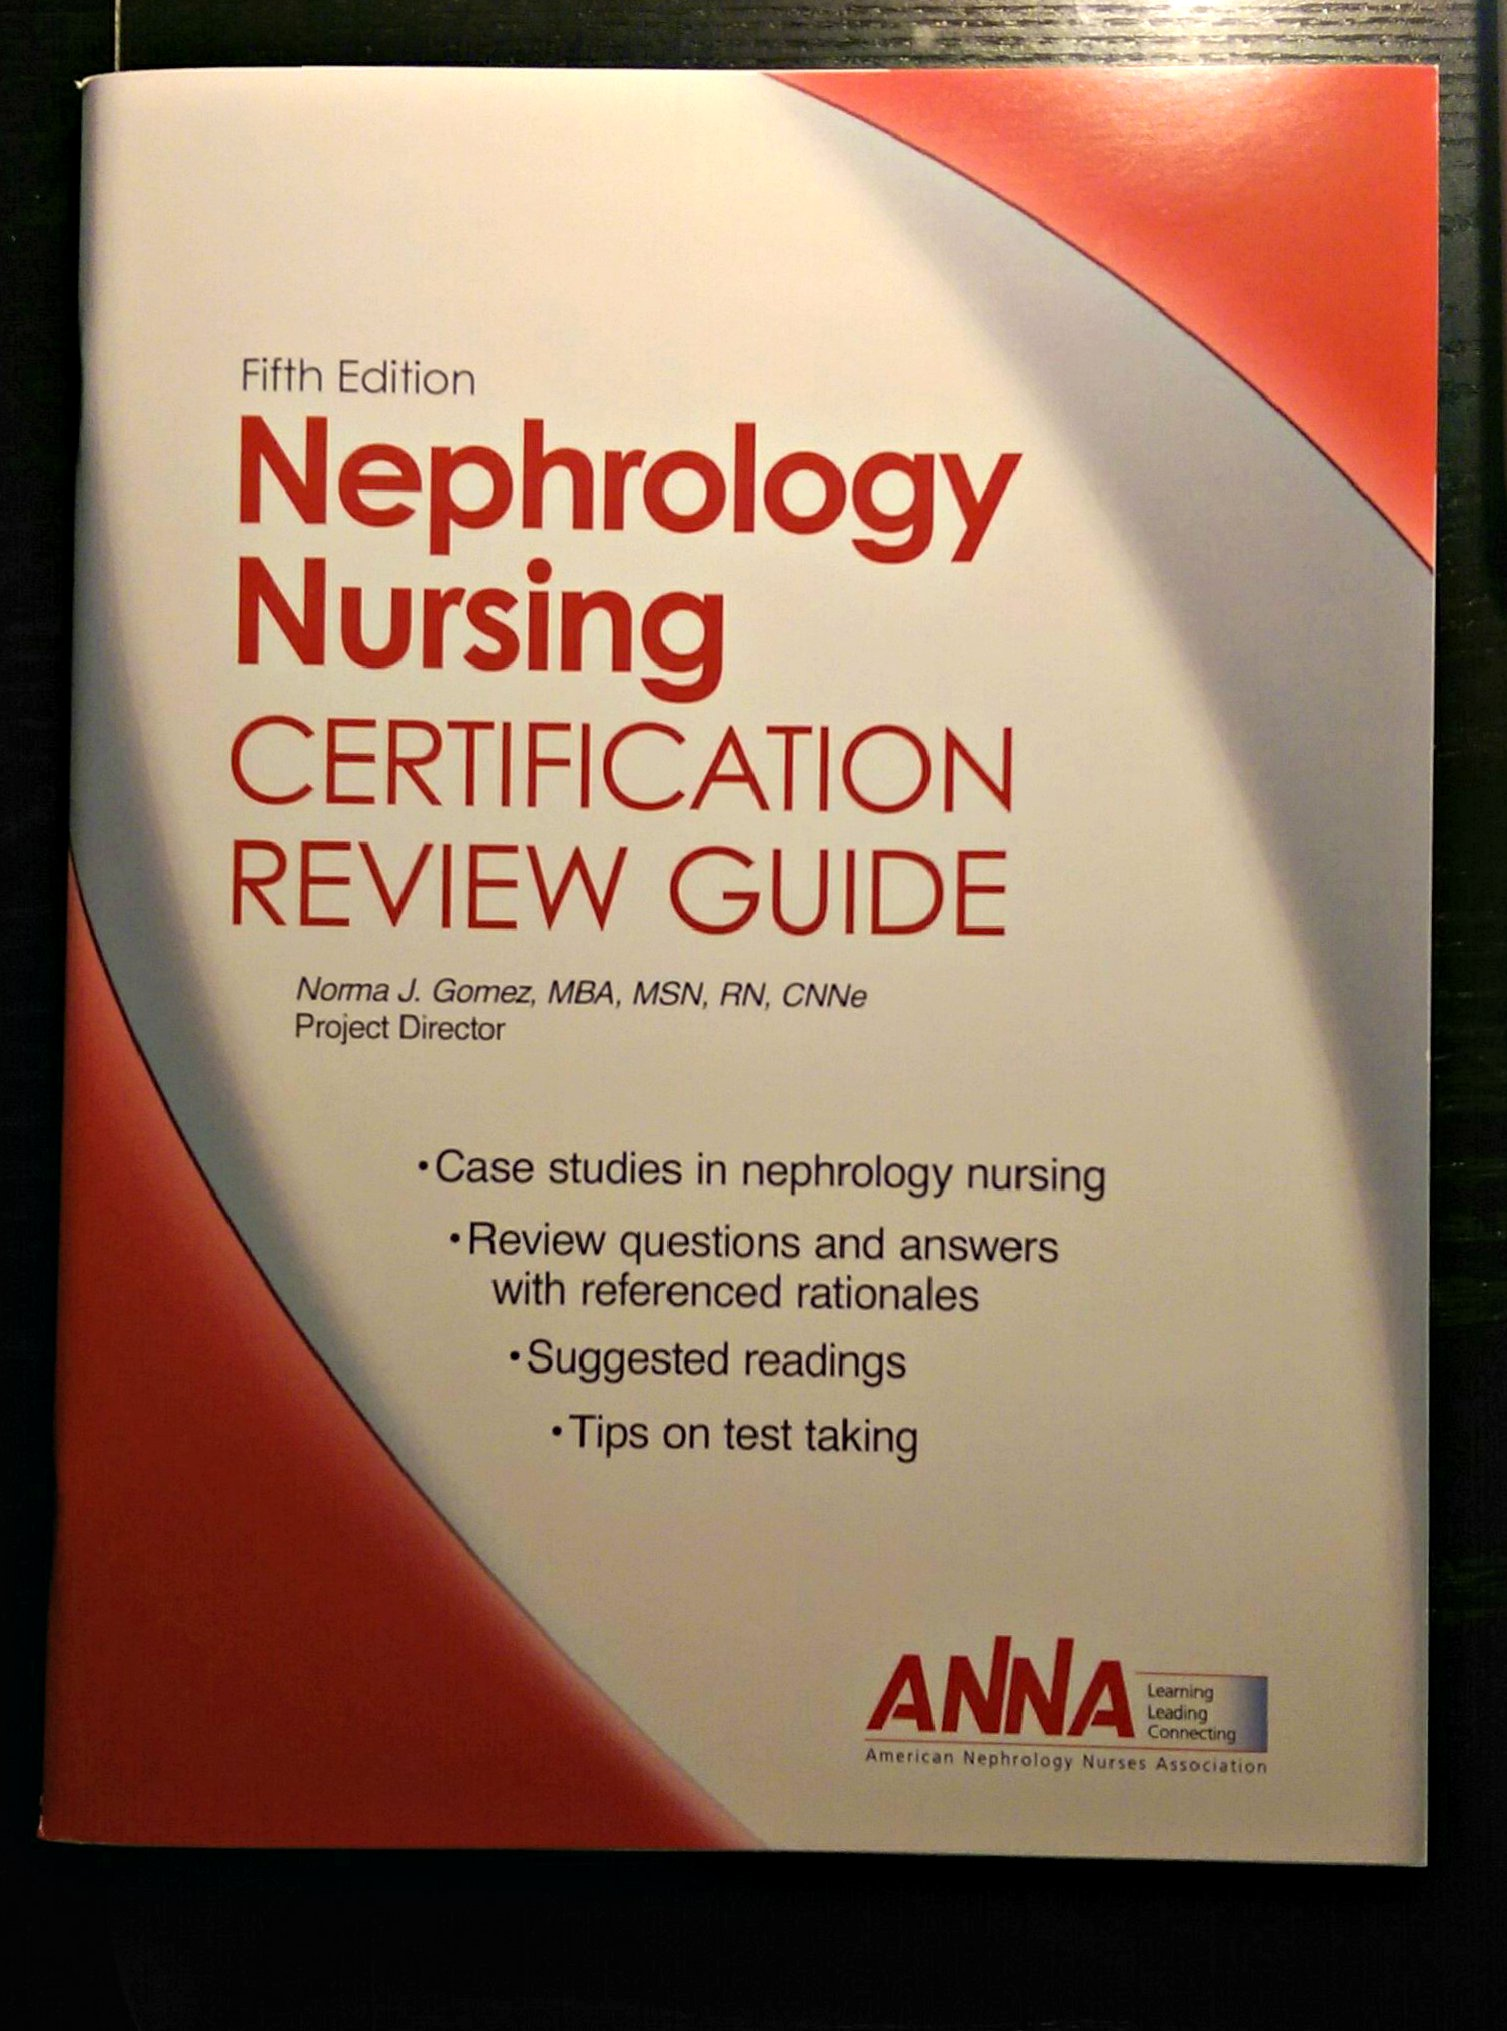 Nephrology Nursing Certification Review Guide 5th Edition Norma J